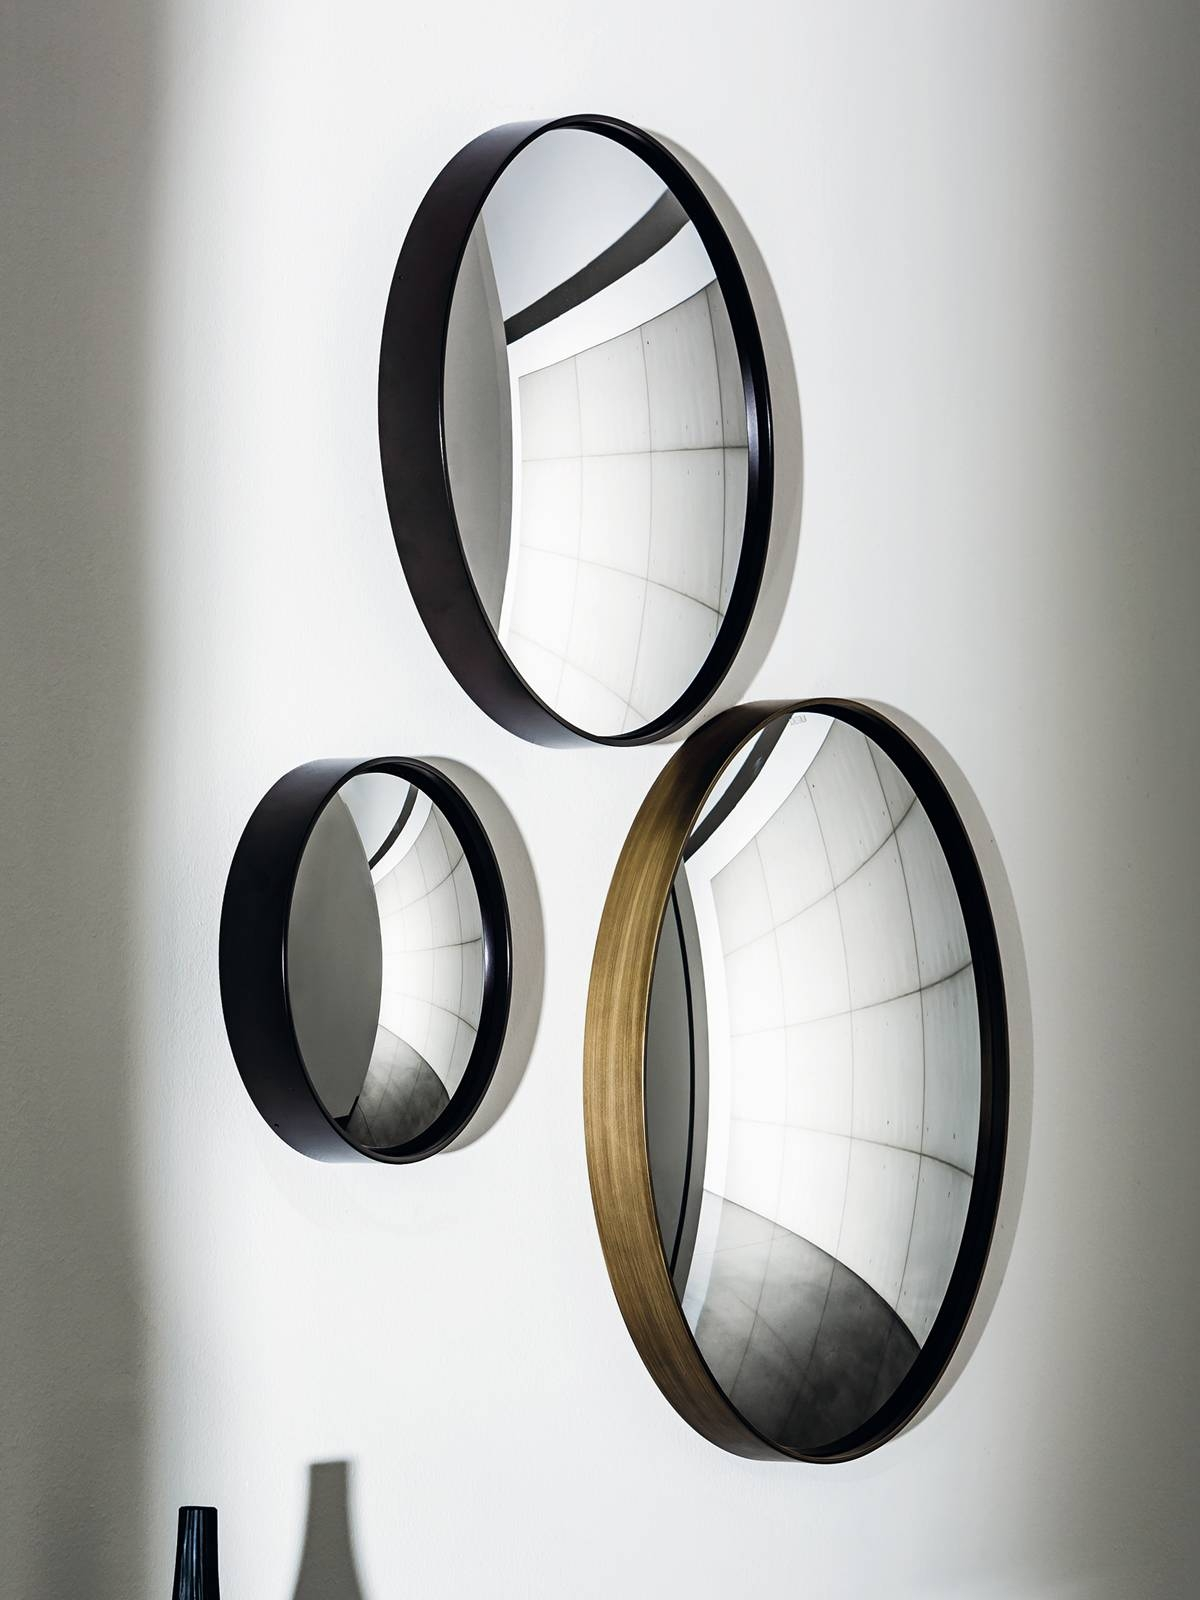 Sail - Decorative Convex Mirror - Small Unique Wall Mounted Mirror. intended for Round Convex Mirrors (Image 19 of 25)